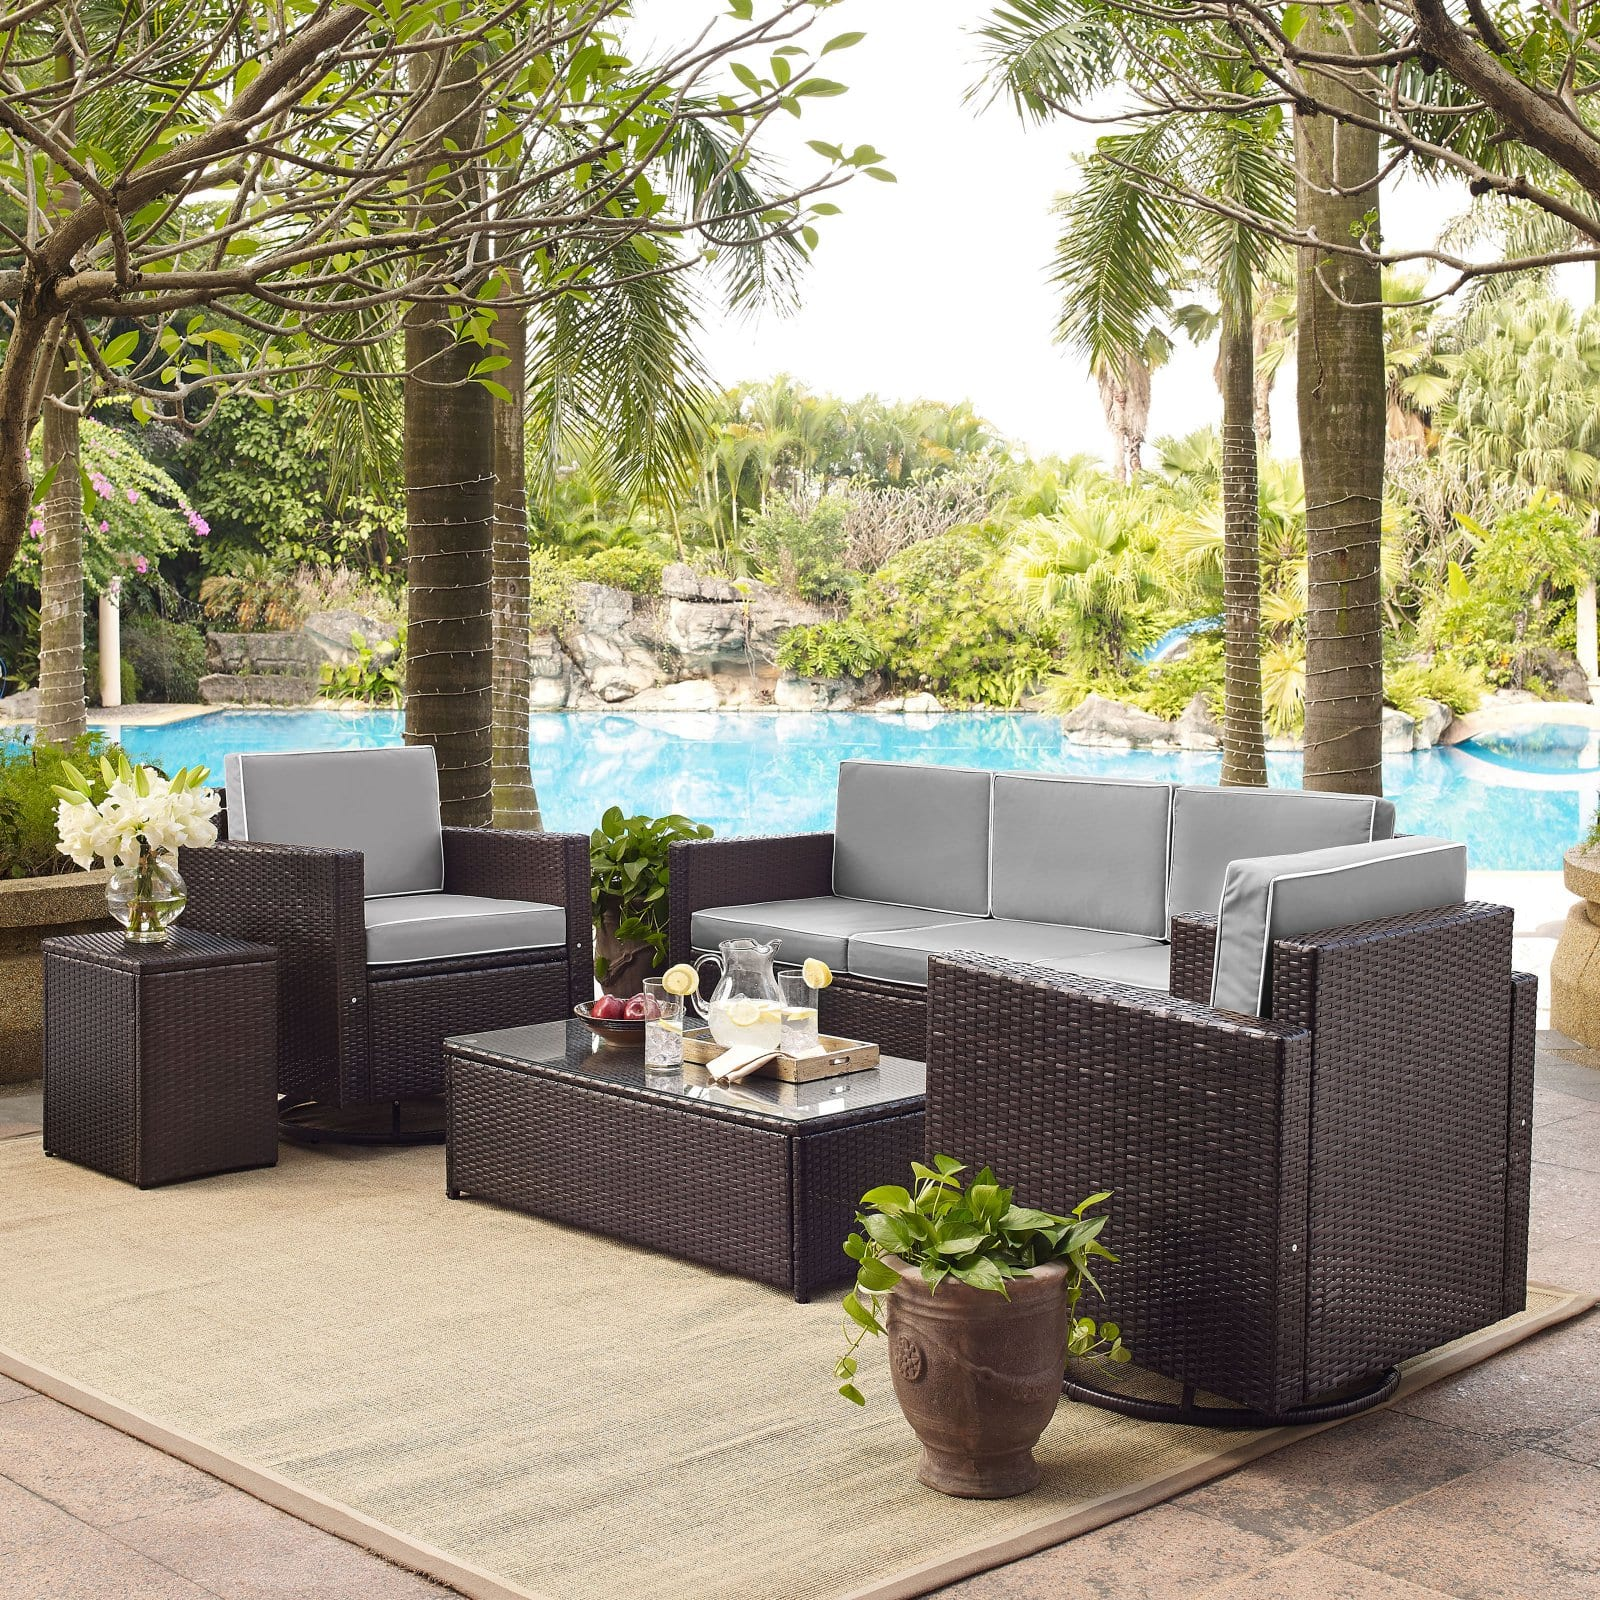 Picture of: Palm Harbor 5 Piece Outdoor Wicker Sofa Conversation Set With Grey Cushions Sofa Two Swivel Chairs Side Table Glass Top Table Walmart Com Walmart Com